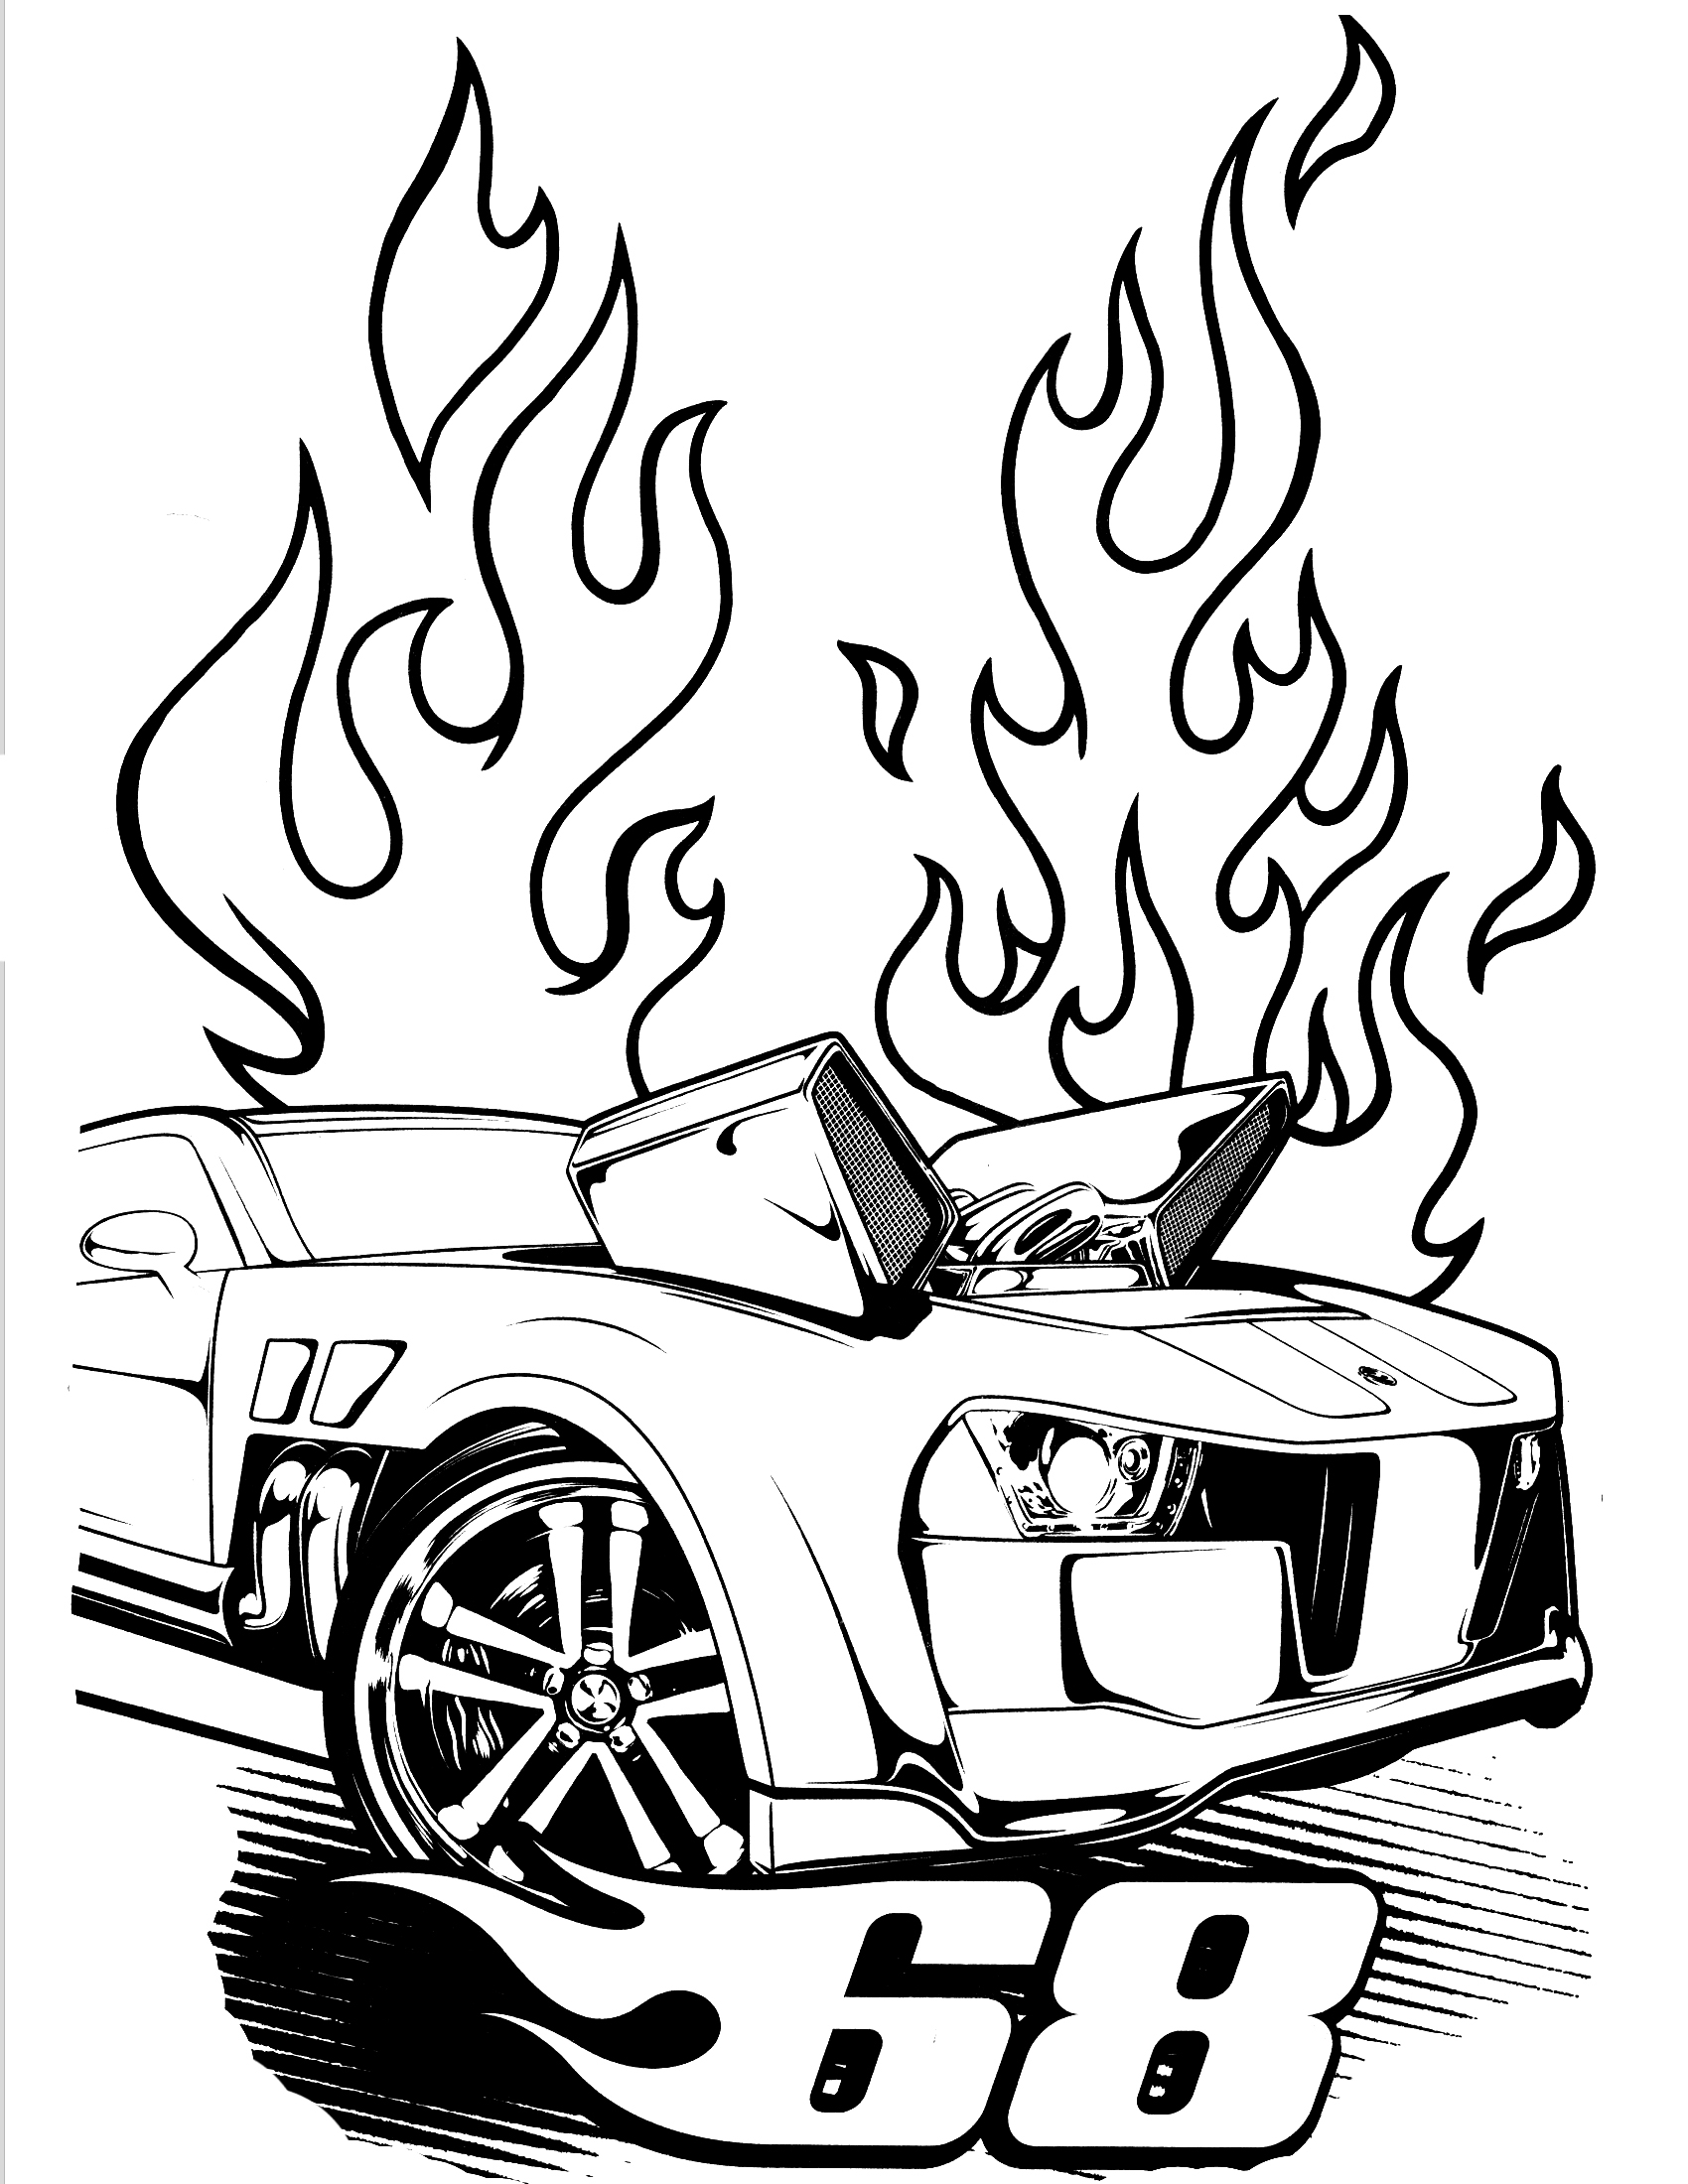 Dodge Challenger G T Coloring Page Dodge Coloring Pages to Print Download Of Coloring Books and Pages Simple Hot Rod Coloring Pages Pinterest Printable